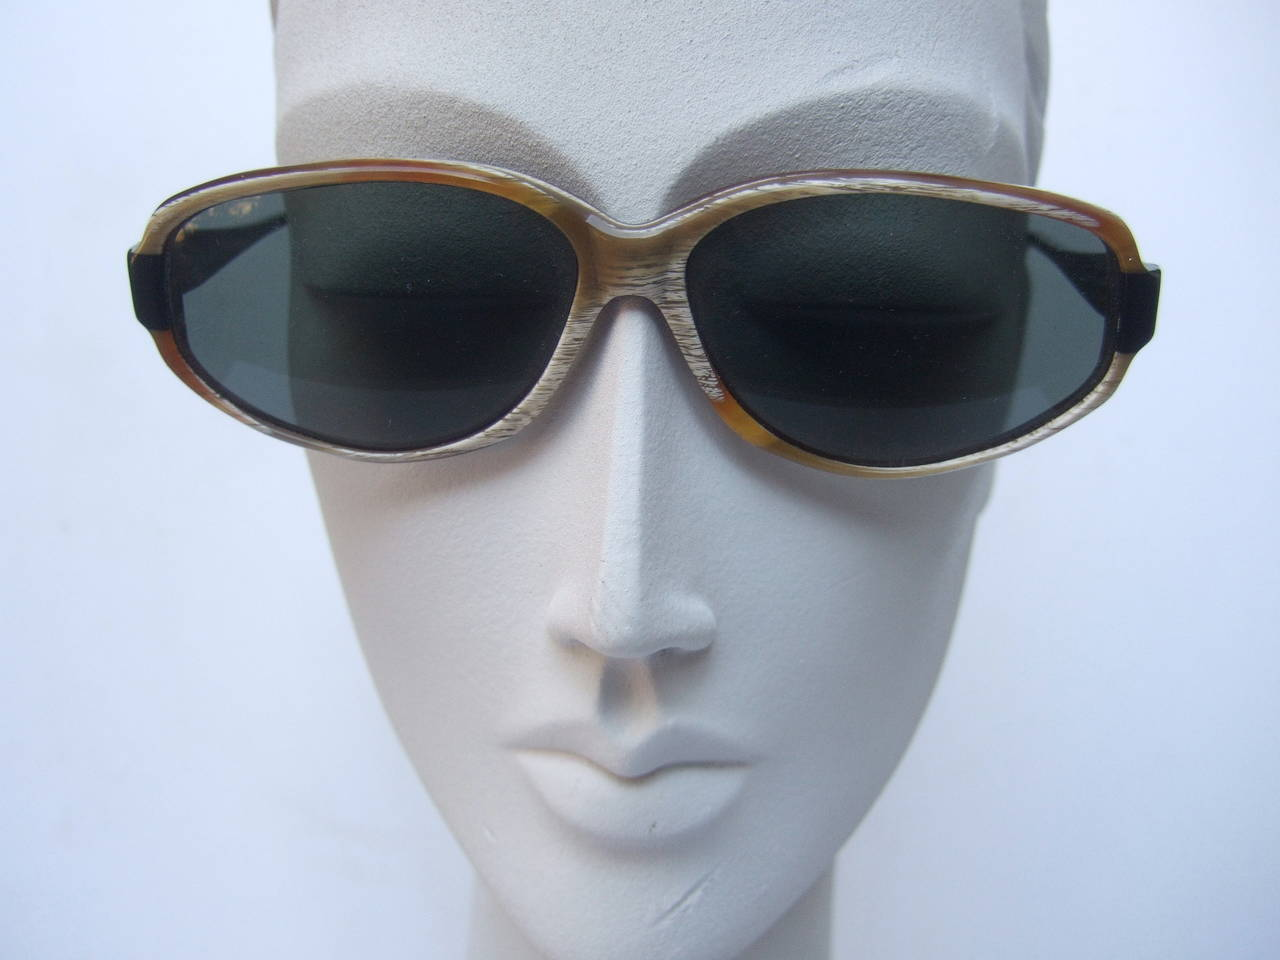 Black Jean Patou Paris Stylish Sunglasses Made in France For Sale